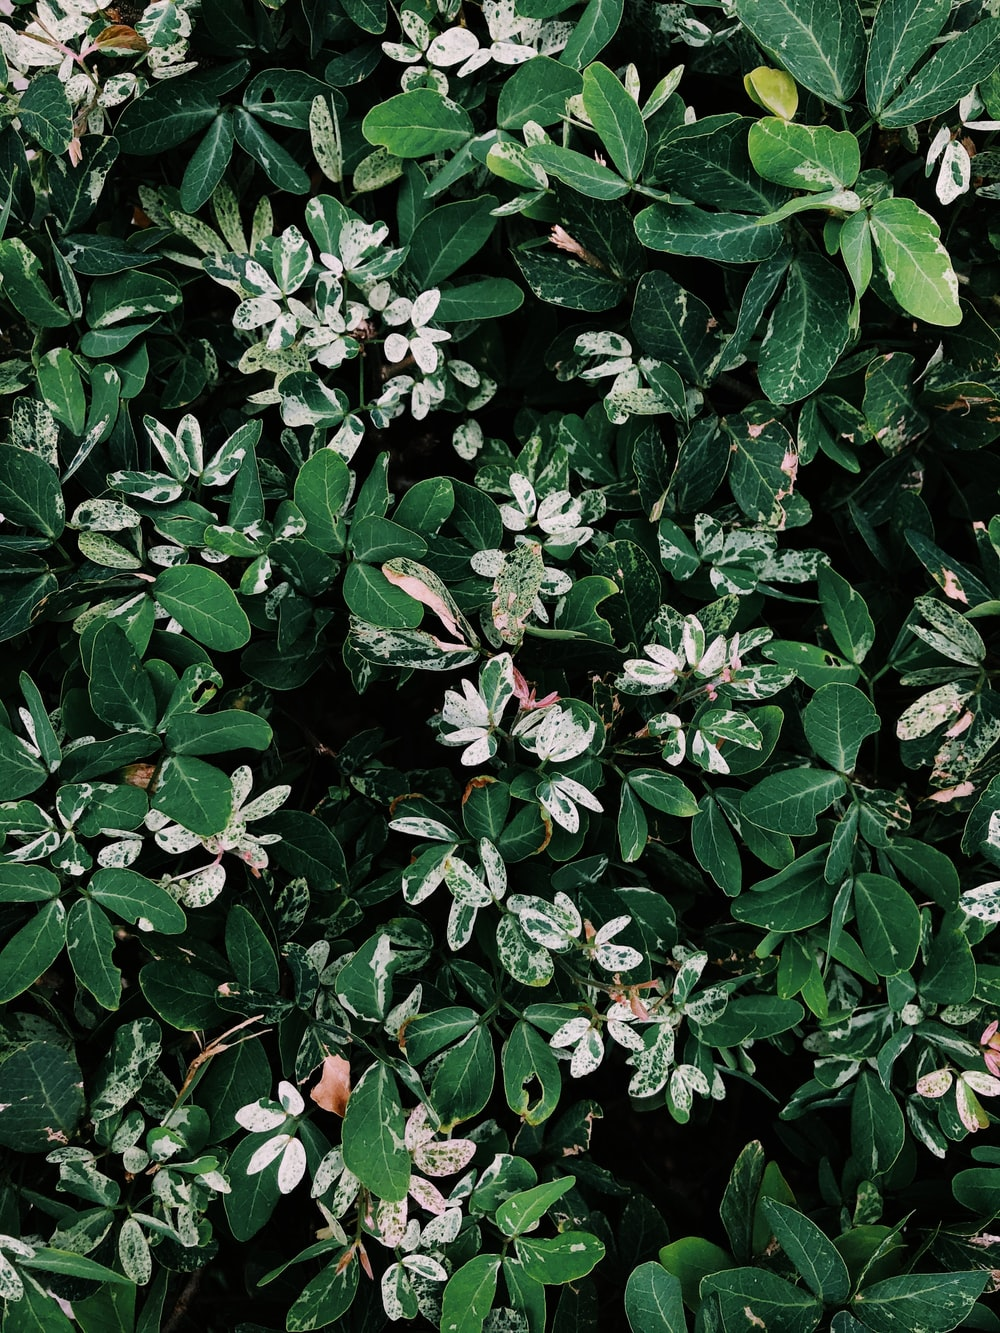 Pink And White Flowers With Green Leaves Photo Free Acanthaceae Image On Unsplash